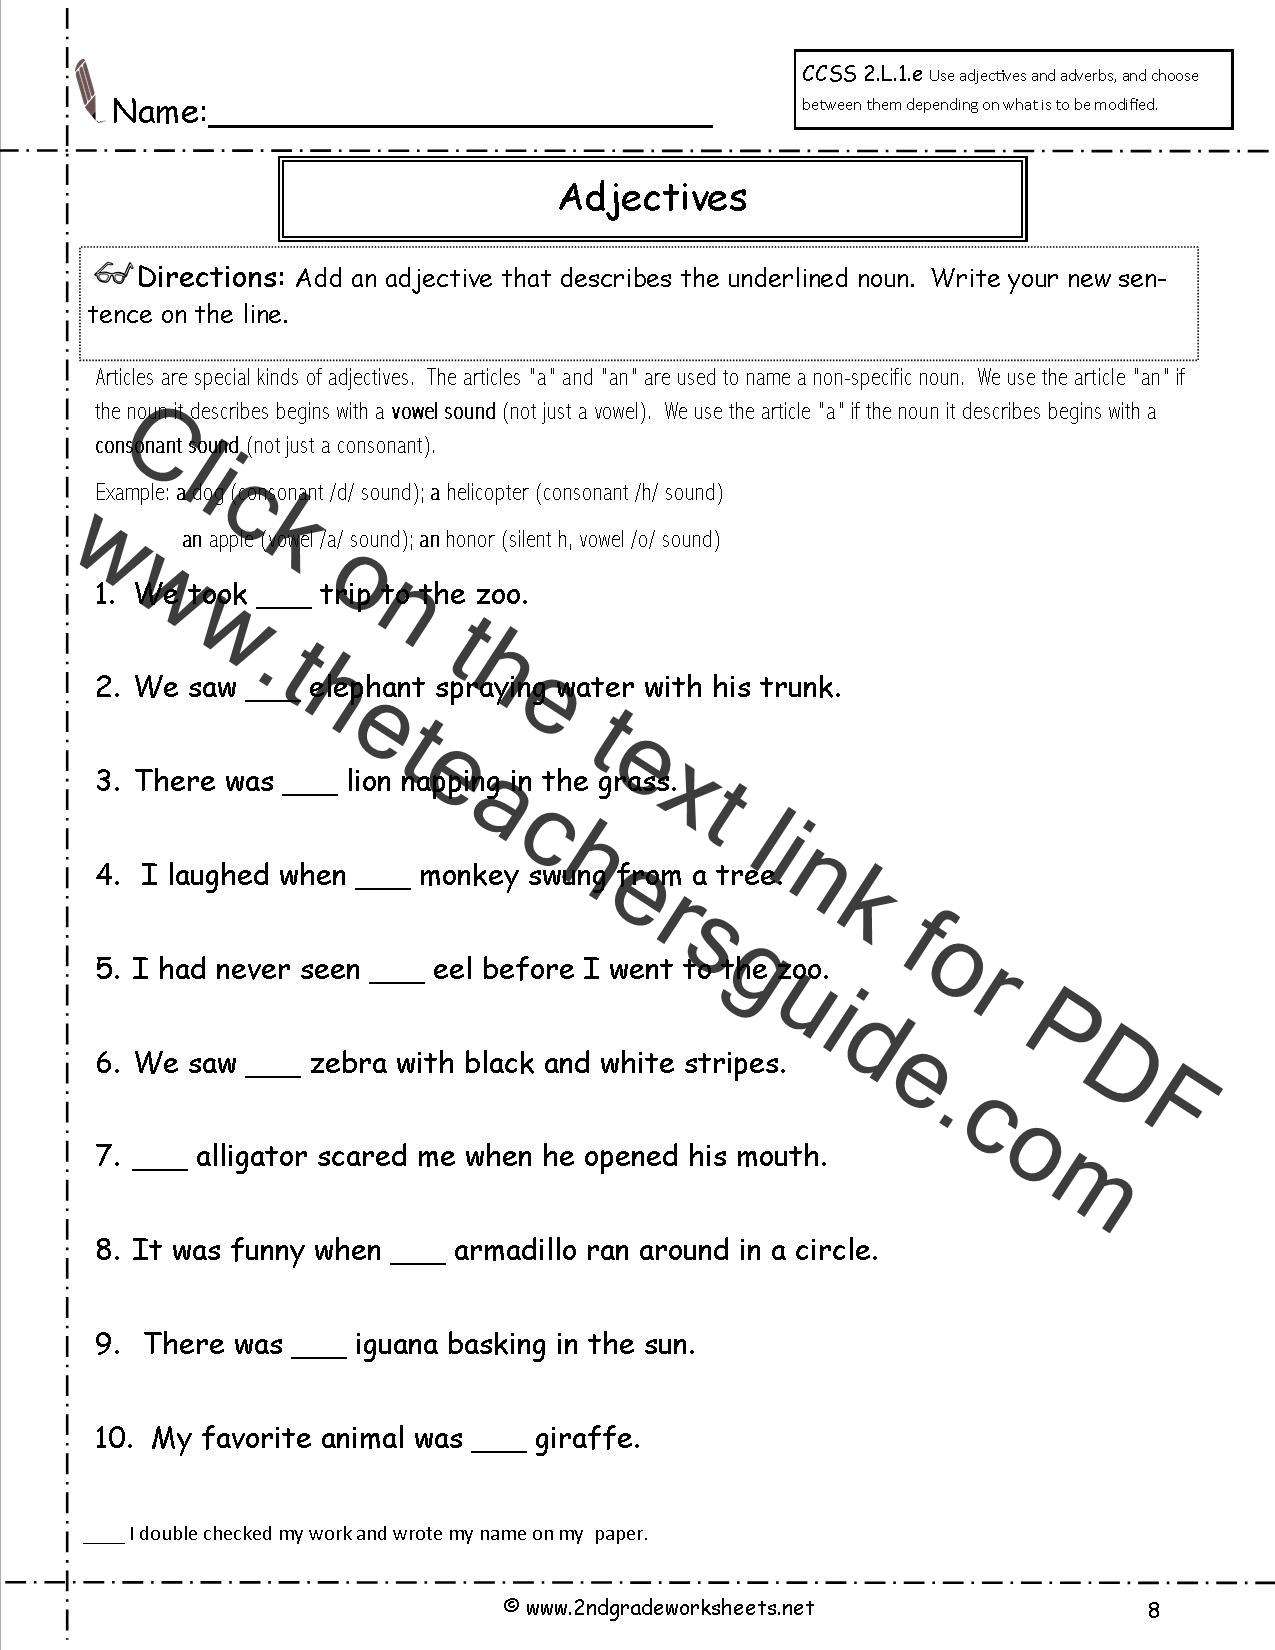 Uncategorized Language Art Worksheets free languagegrammar worksheets and printouts adjectives worksheets